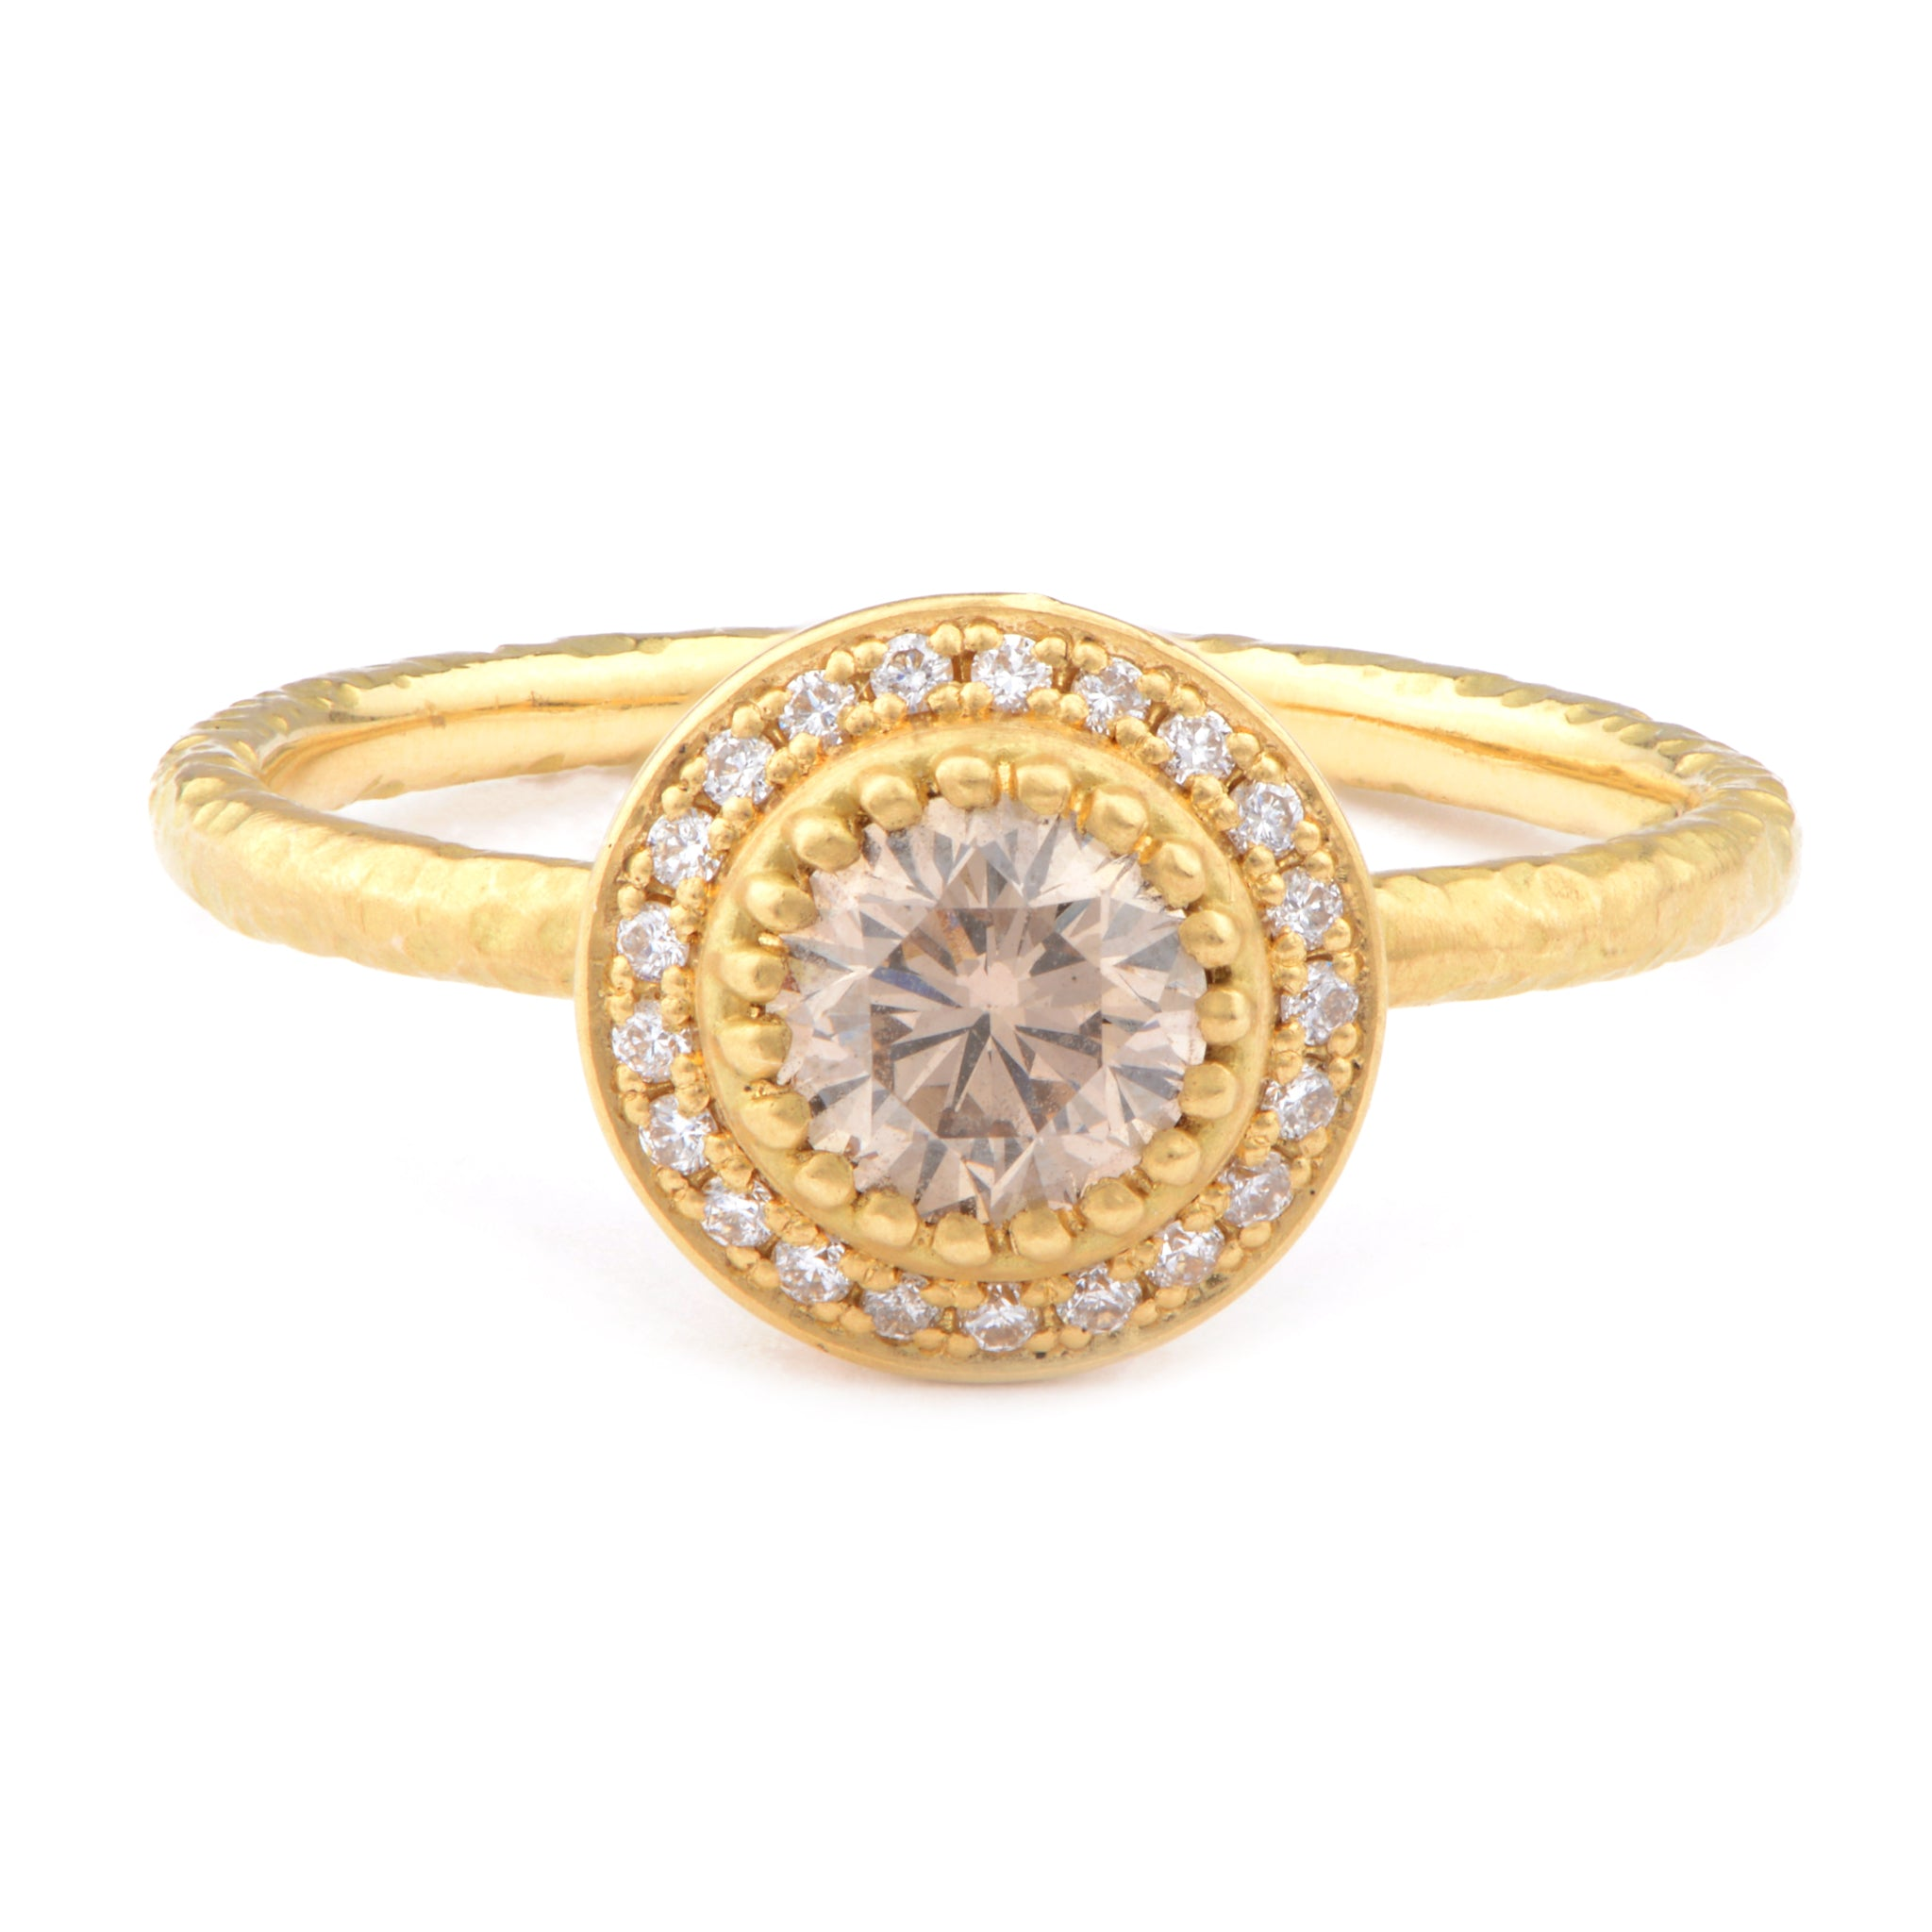 18ct Fiori Yellow Gold Solitaire Cluster Ring - James Newman Jewellery